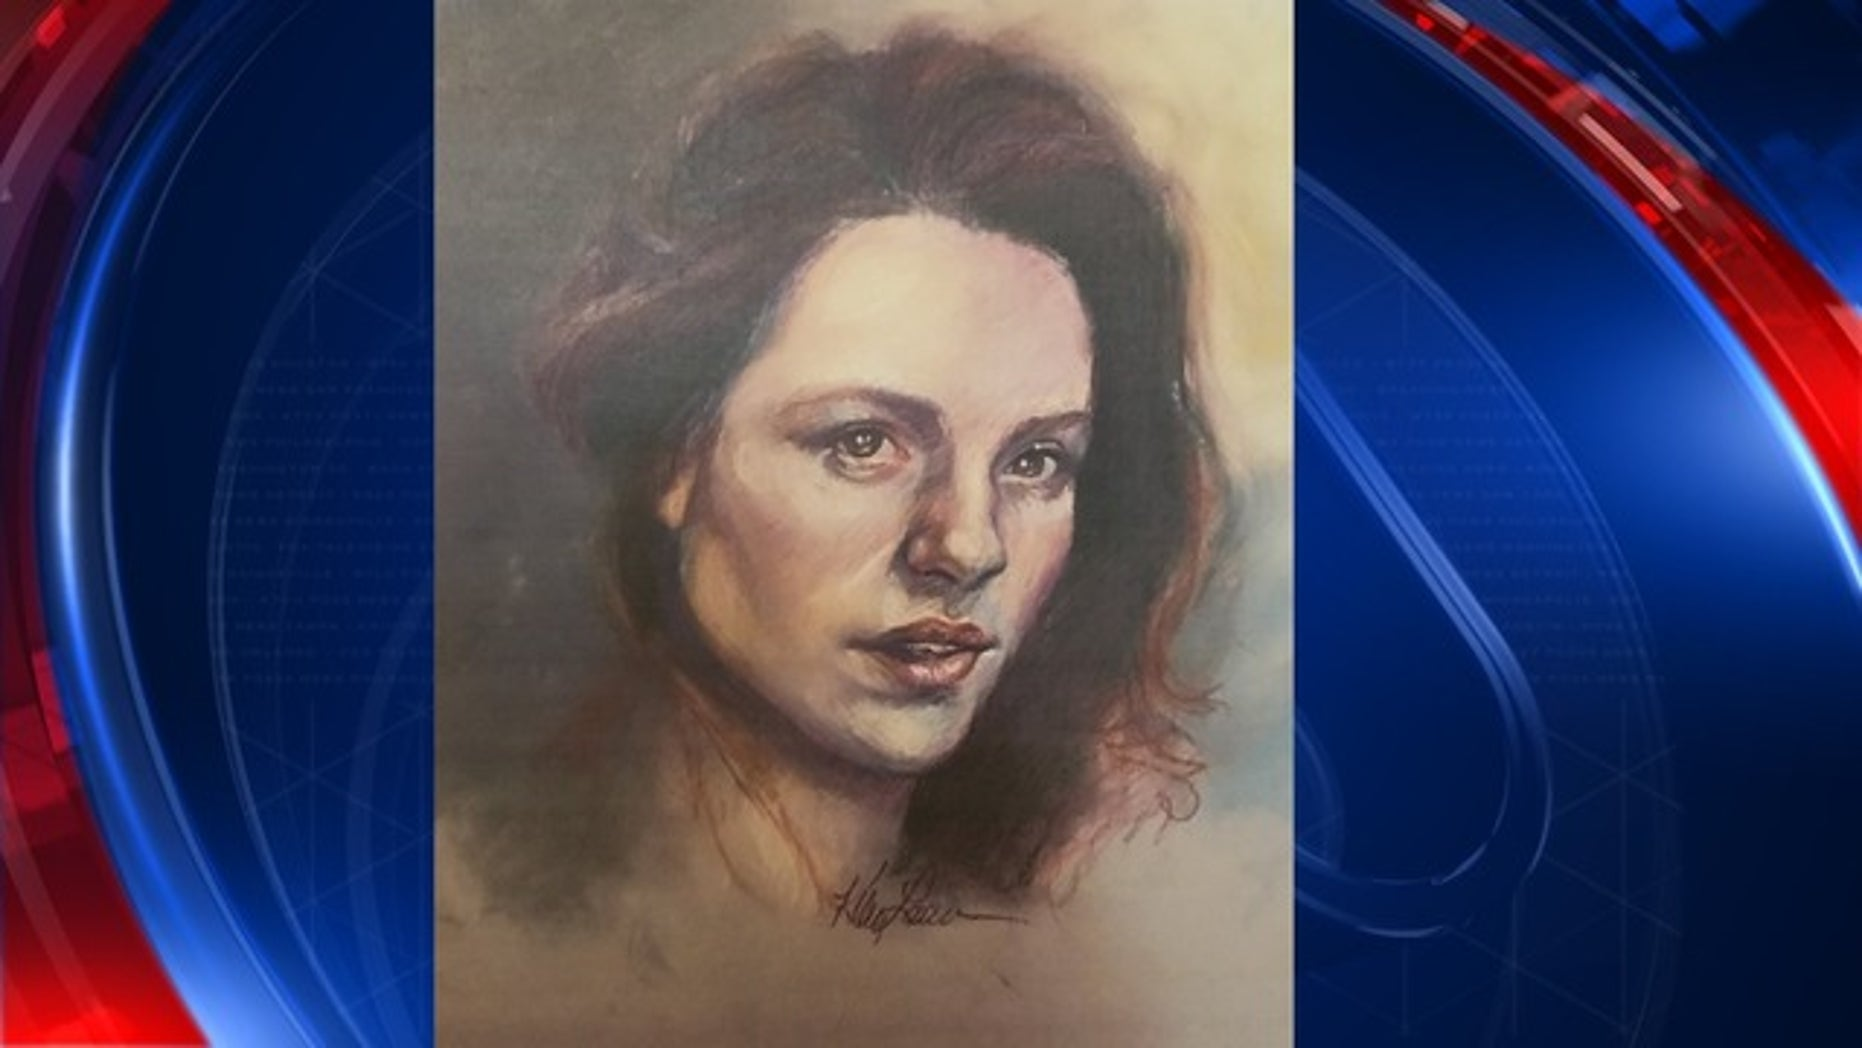 This sketch by the Georgia Bureau of Investigation shows the victim whose remains were found in a landfill this week.